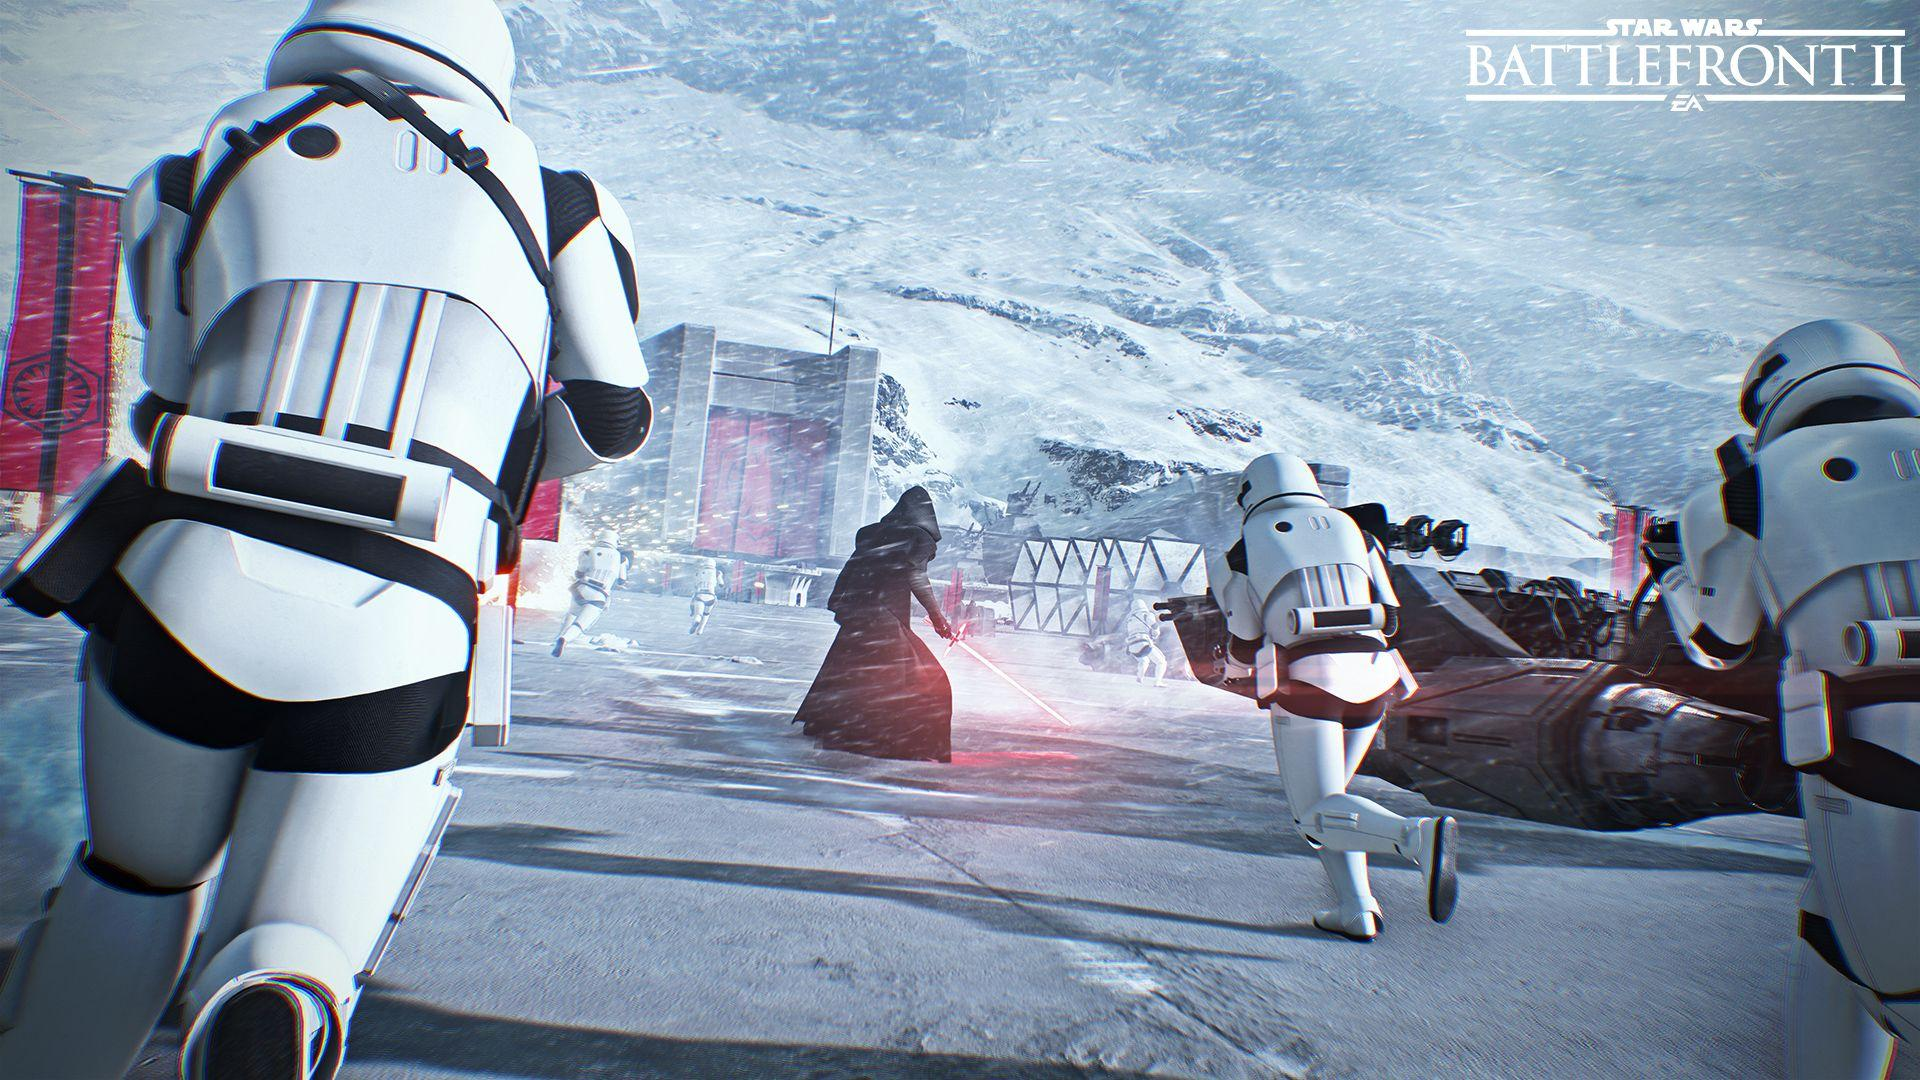 What's new in Star Wars Battlefront 2's multiplayer - Polygon